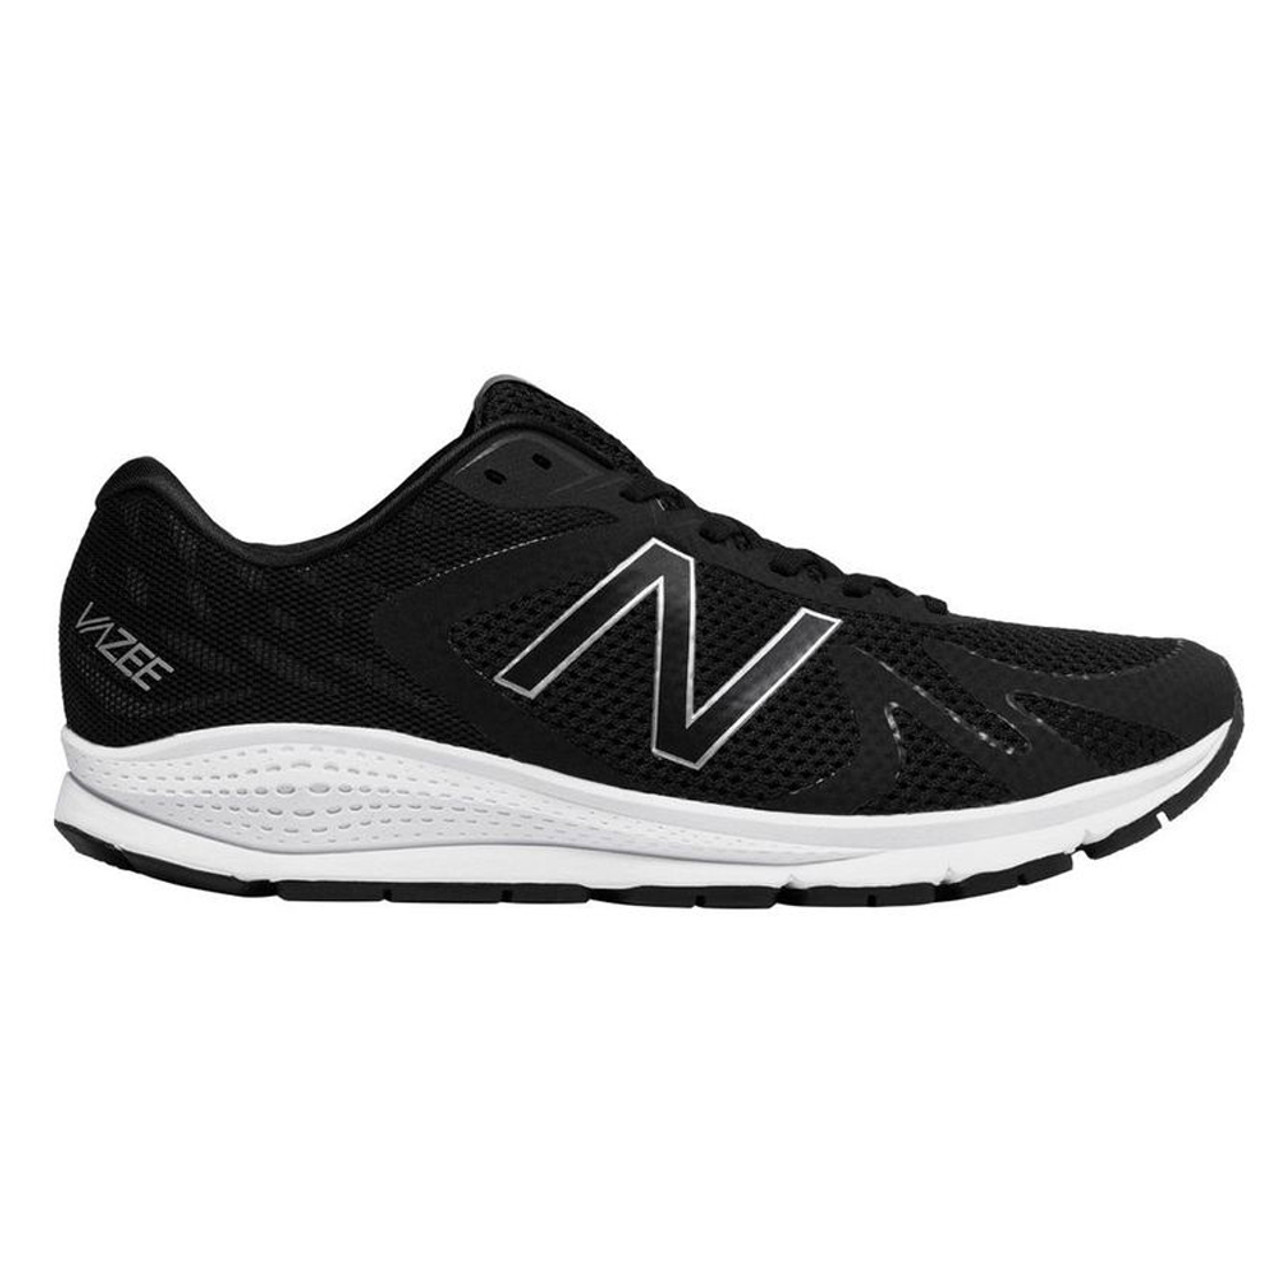 ... New Balance Men's MURGEBK Vazee Urge V1 Running Shoe Black/White.  https://d3d71ba2asa5oz.cloudfront.net/42000201/images/murgebk.